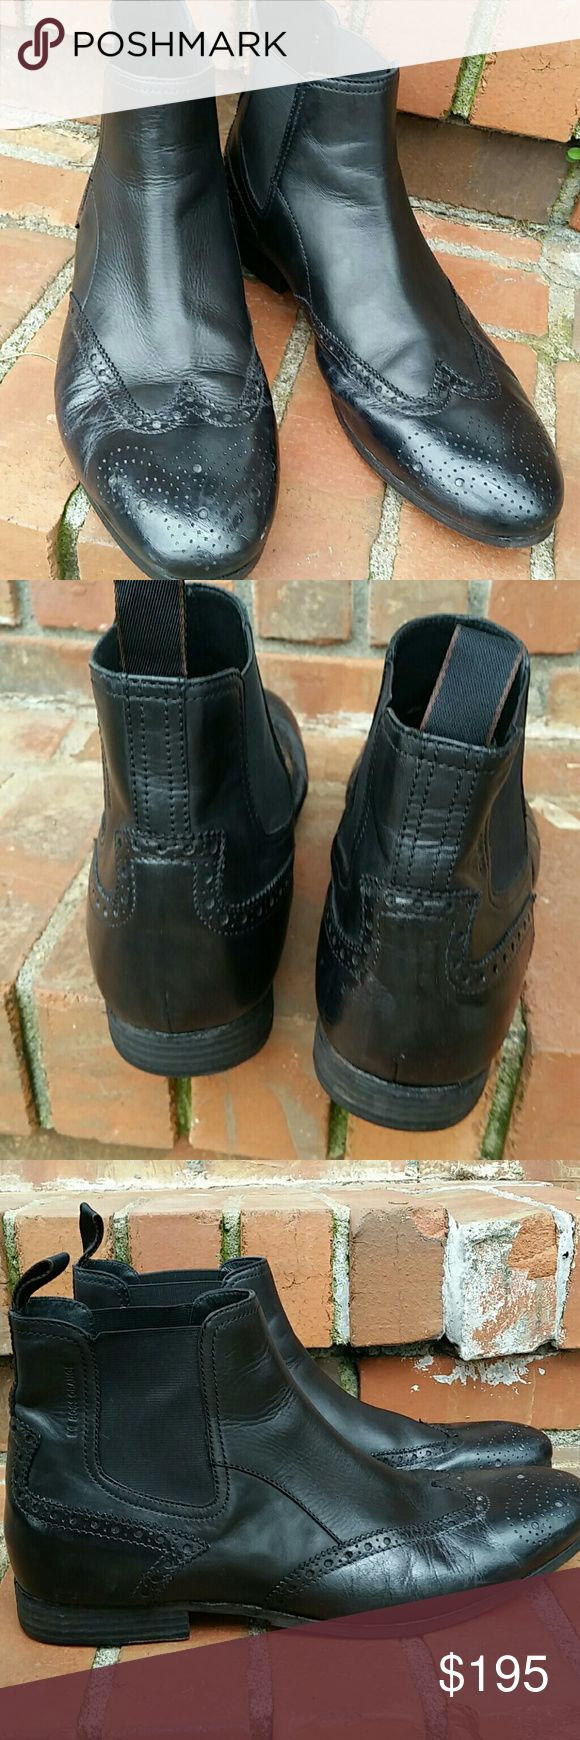 Hugo Boss boots Excellent condition. Hugo Boss Orange boots Size 44 or U.S. men's 10. Wingtip design. Chelsea Hugo Boss Shoes